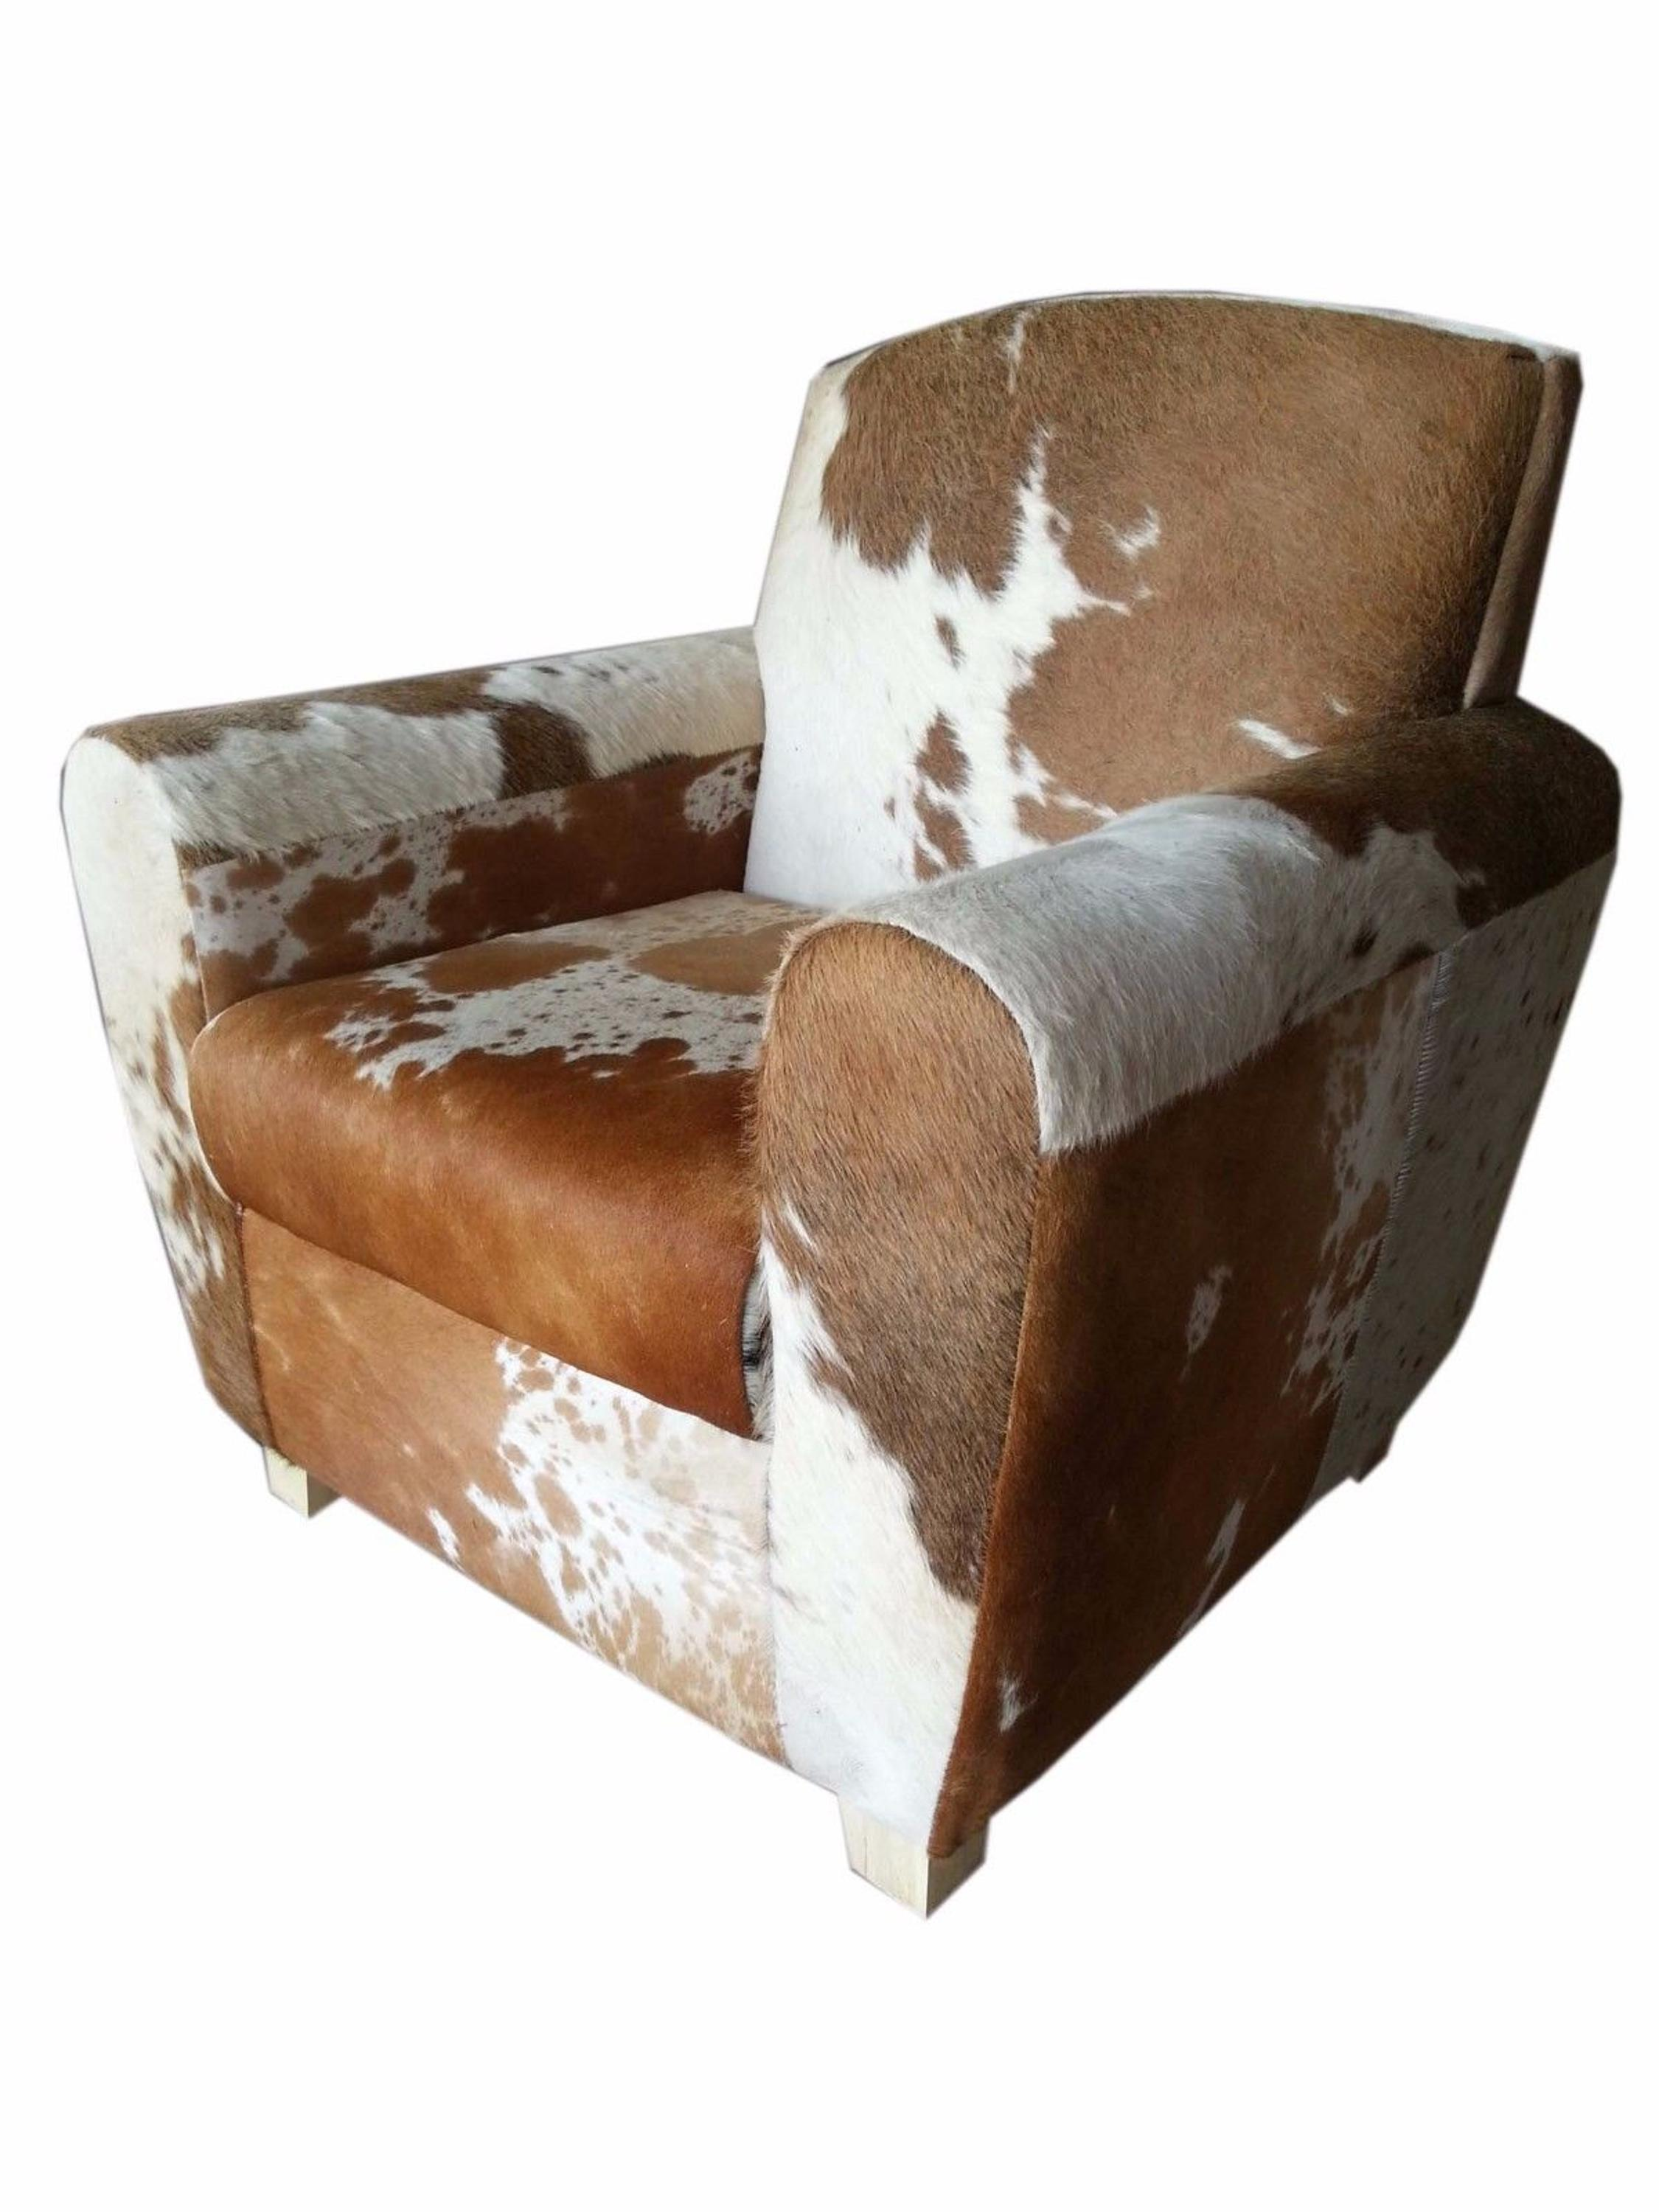 Biggest Leather Manufacturer For All Type Of Leather Goods Sofa Chair Vintage Furniture Club Hotel Bar Leather Cowhide Buy Genuine Cowhide Leather